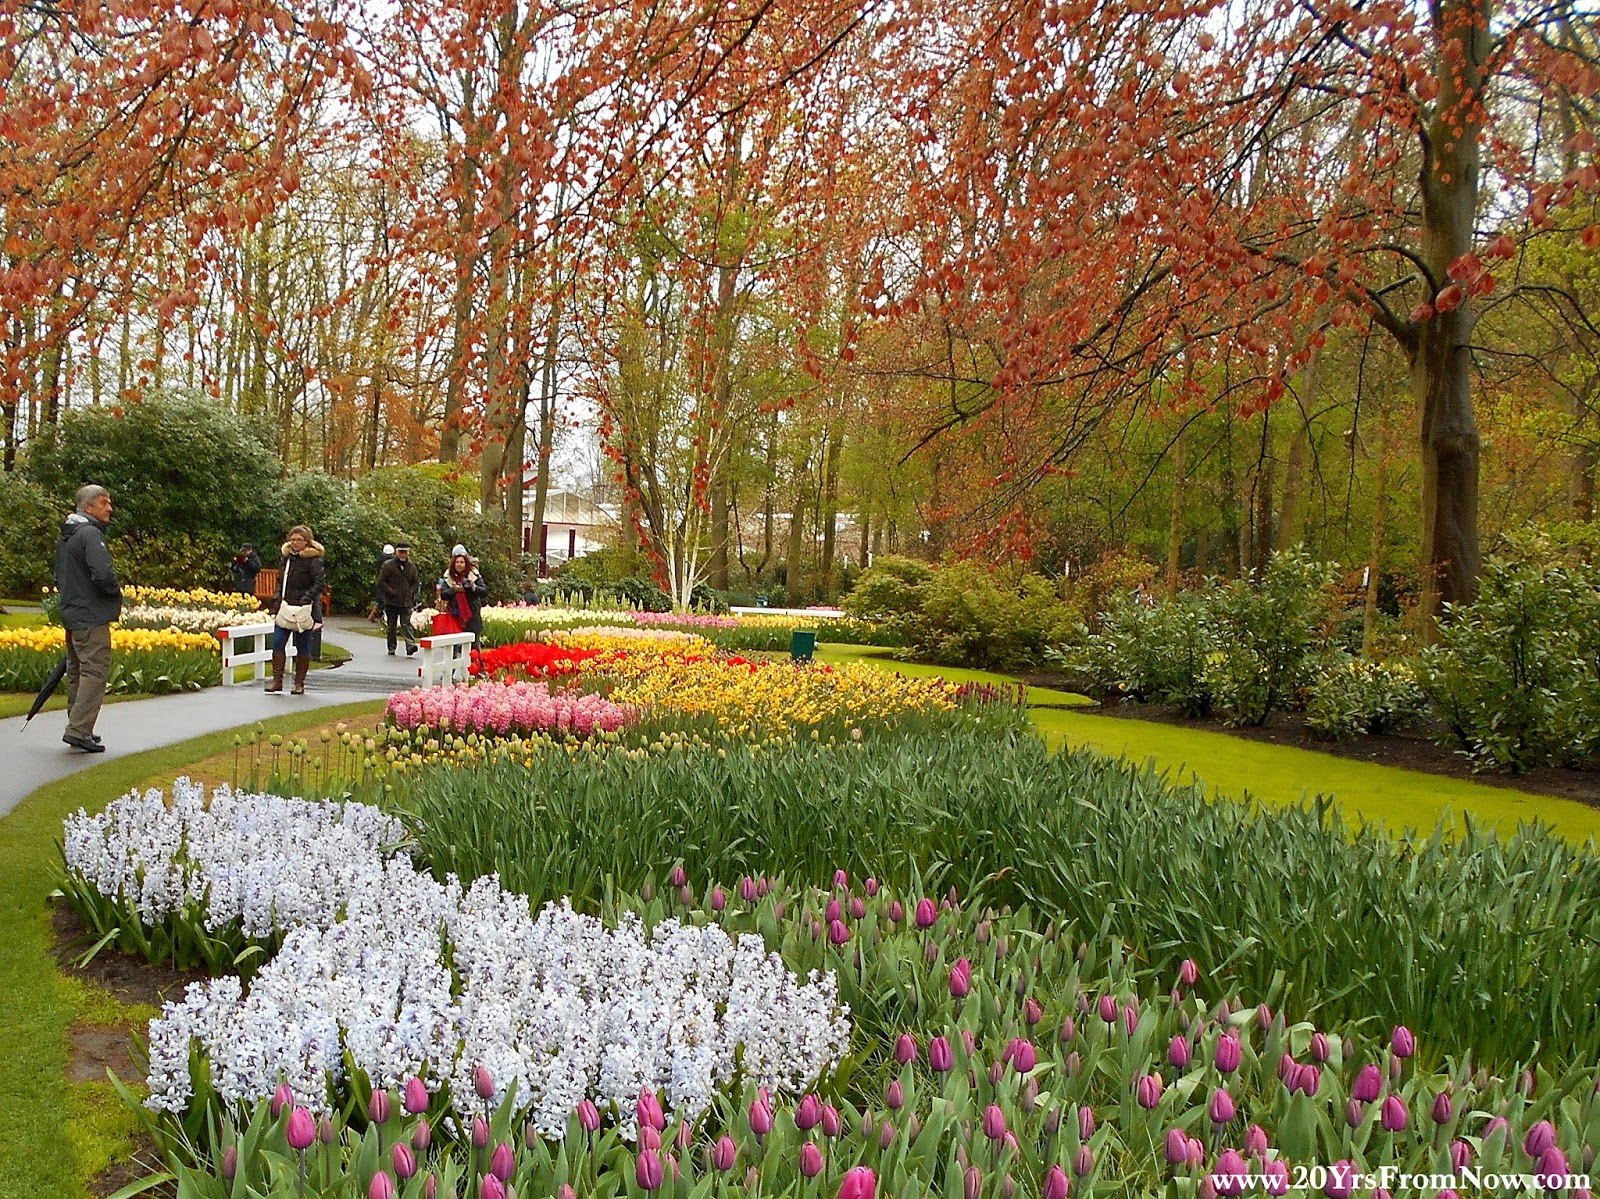 20 Years From Now: Tulips, Tulips, More Tulips